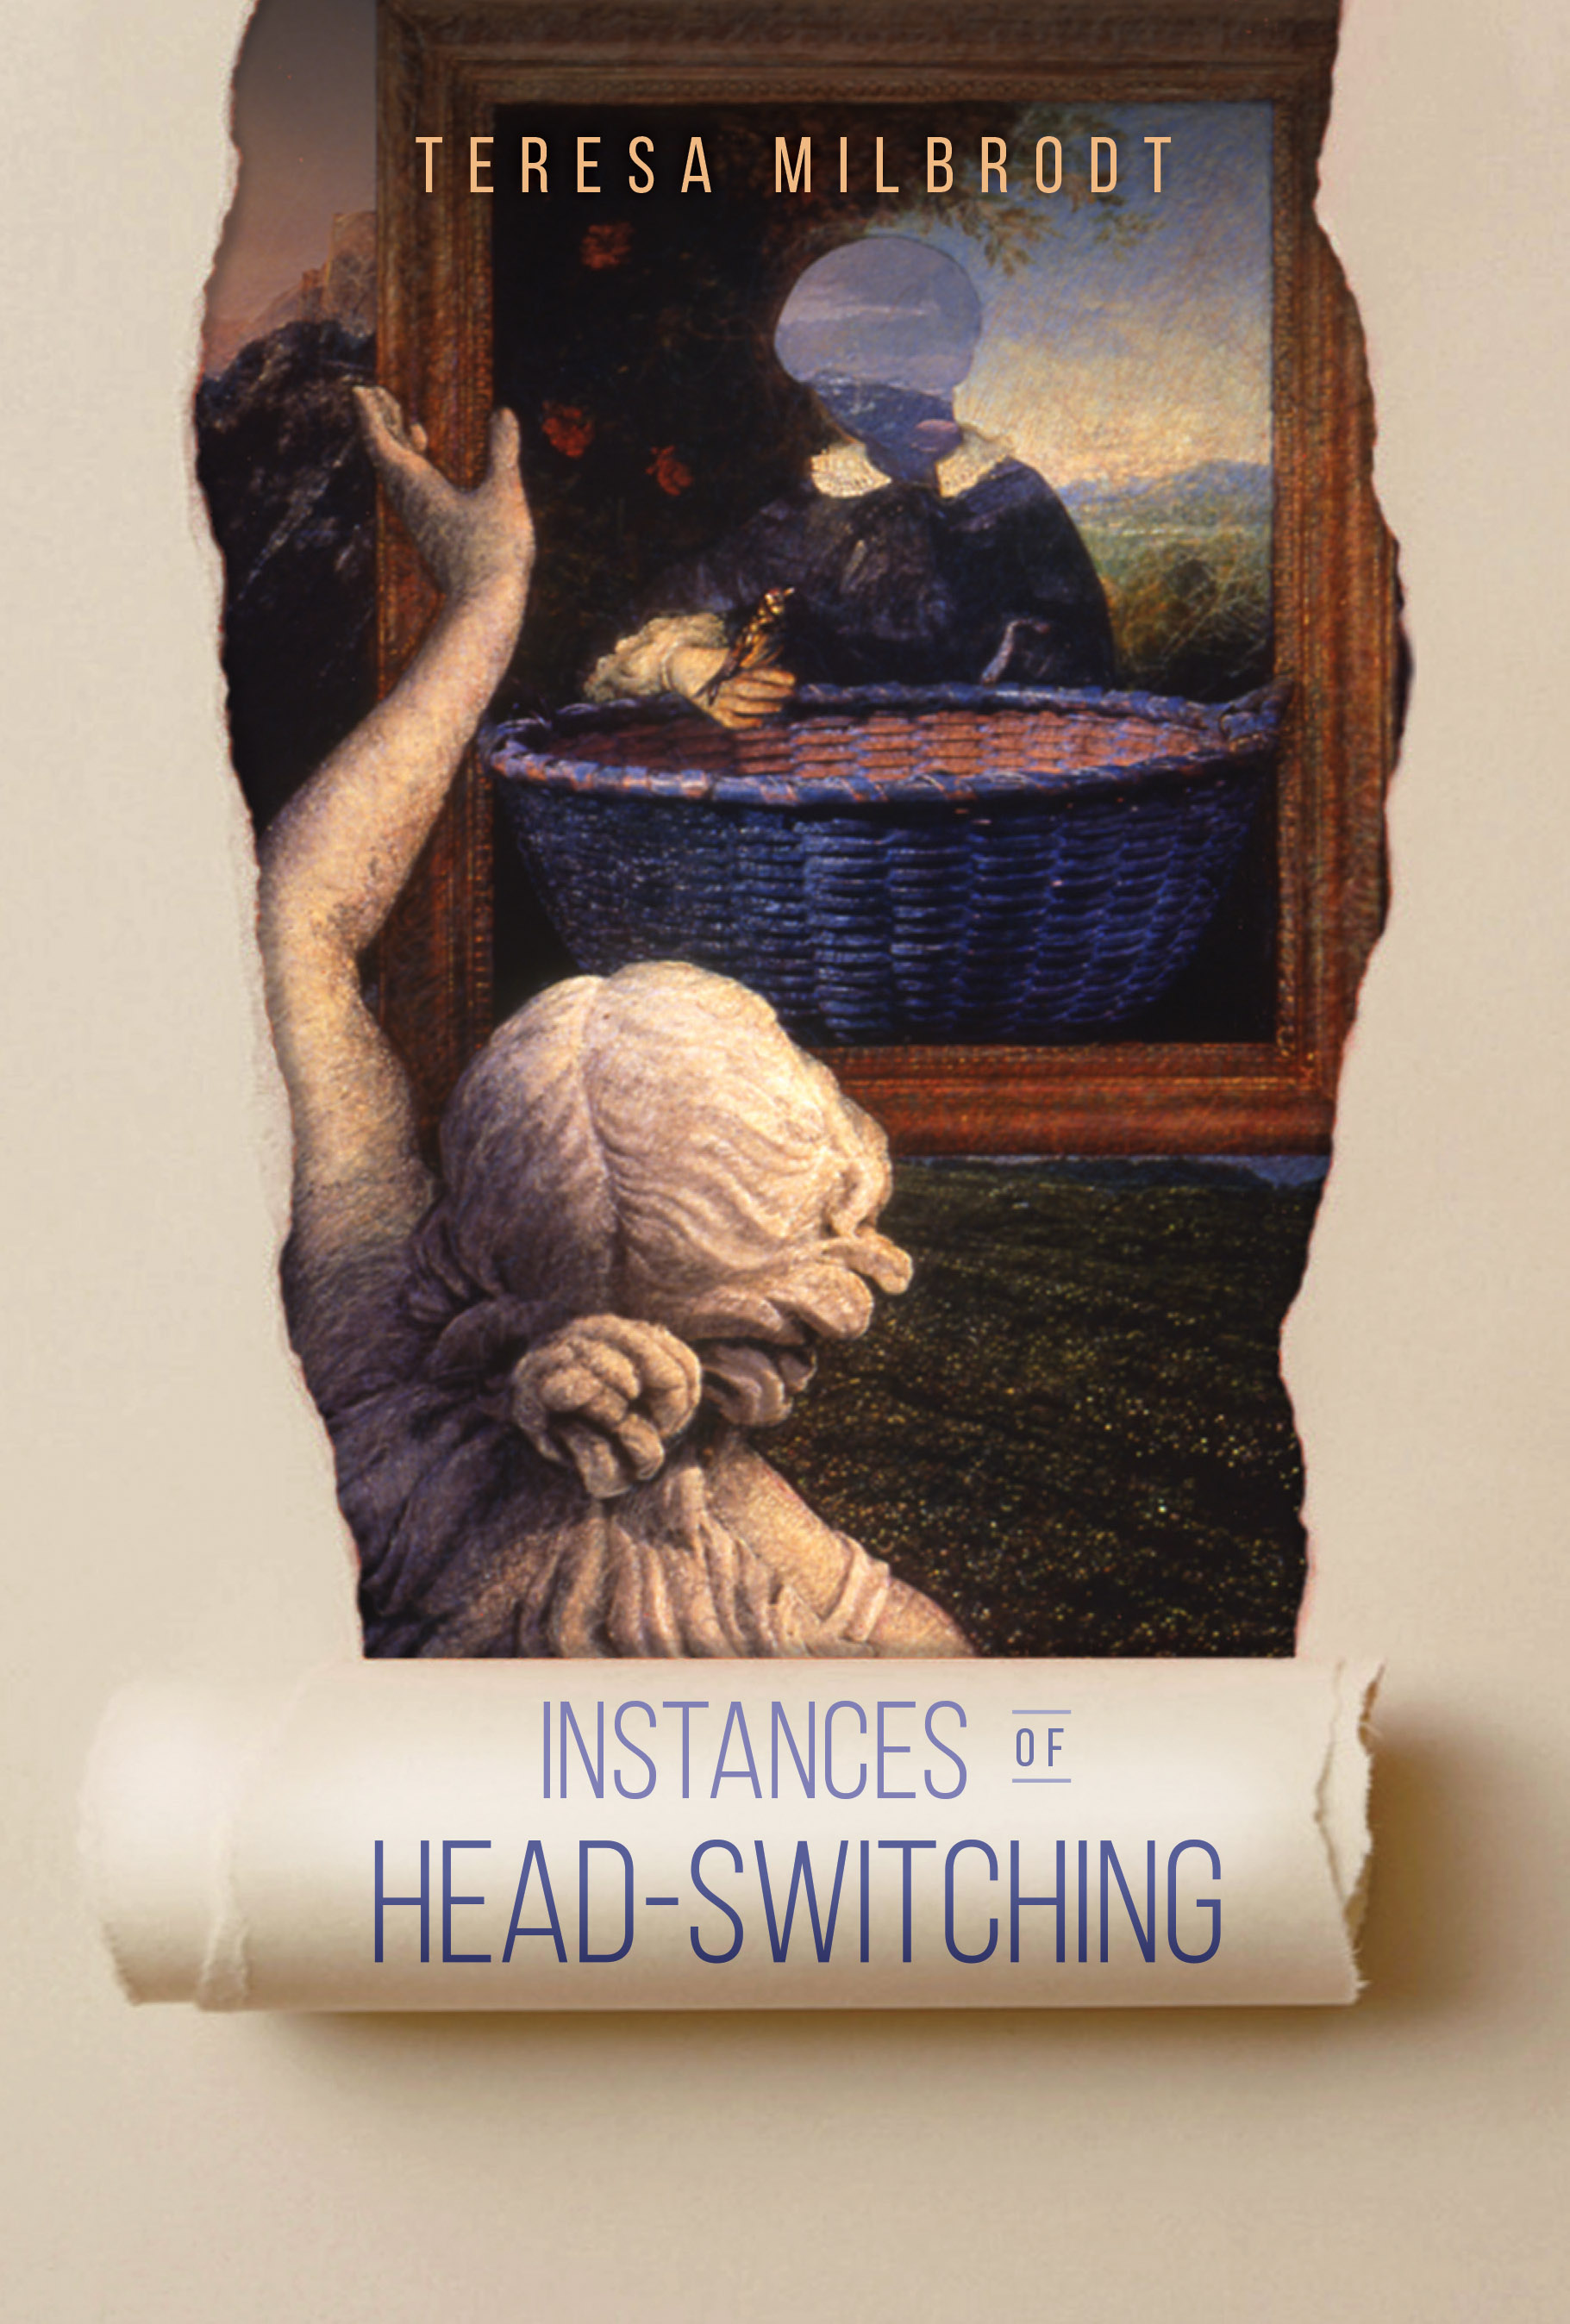 Instances of Head-Switching by Teresa Milbrodt